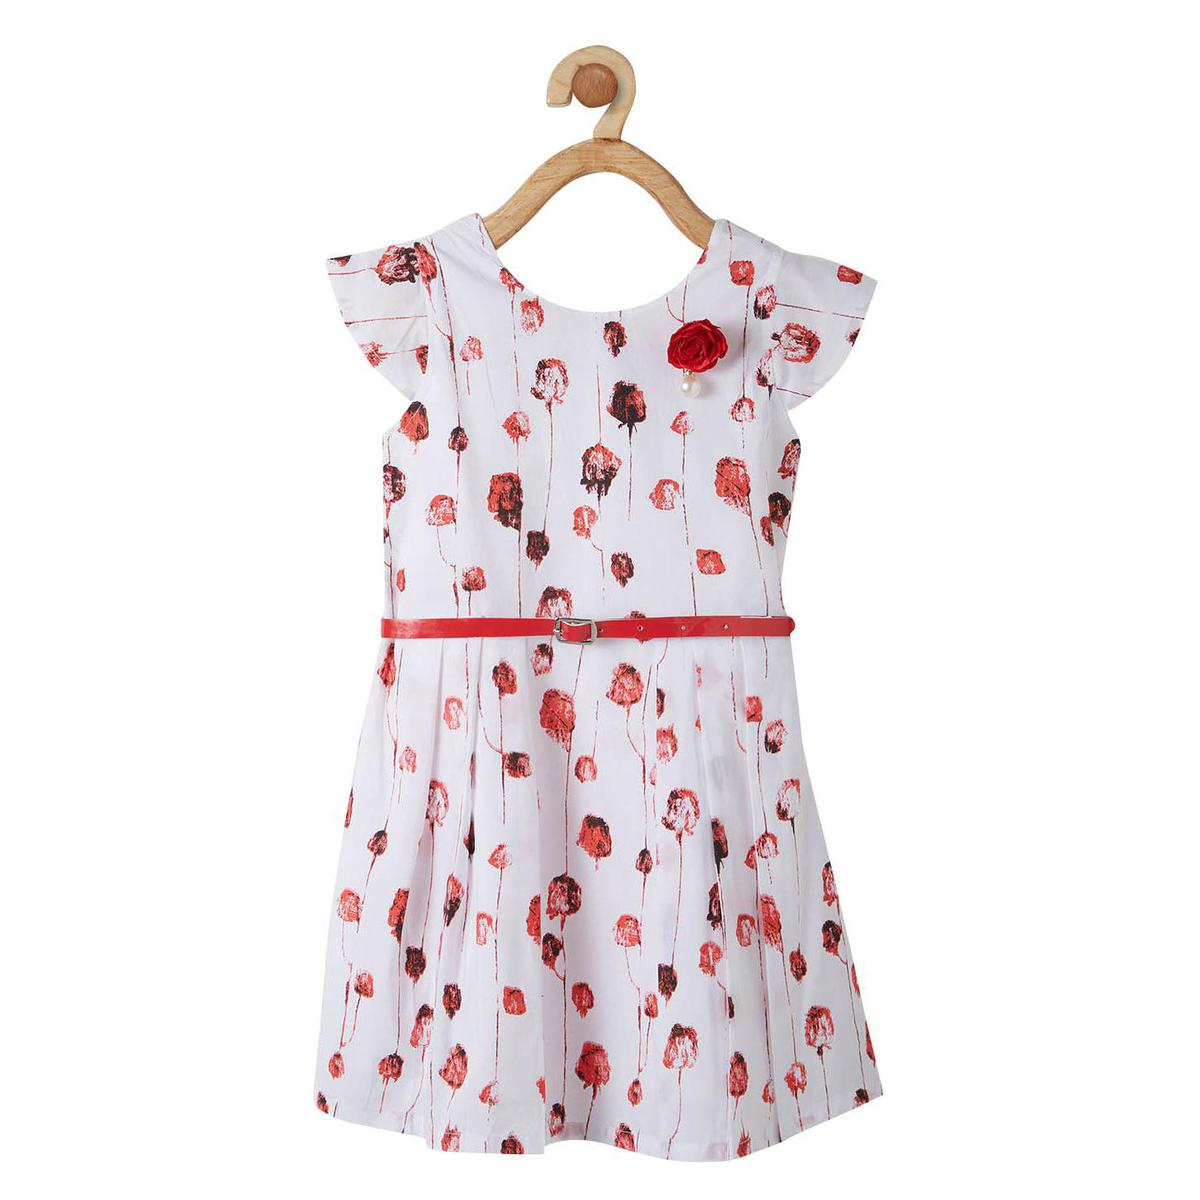 Powderfly Girls White-Red Colored Round Neck Floral Printed Cotton Dress